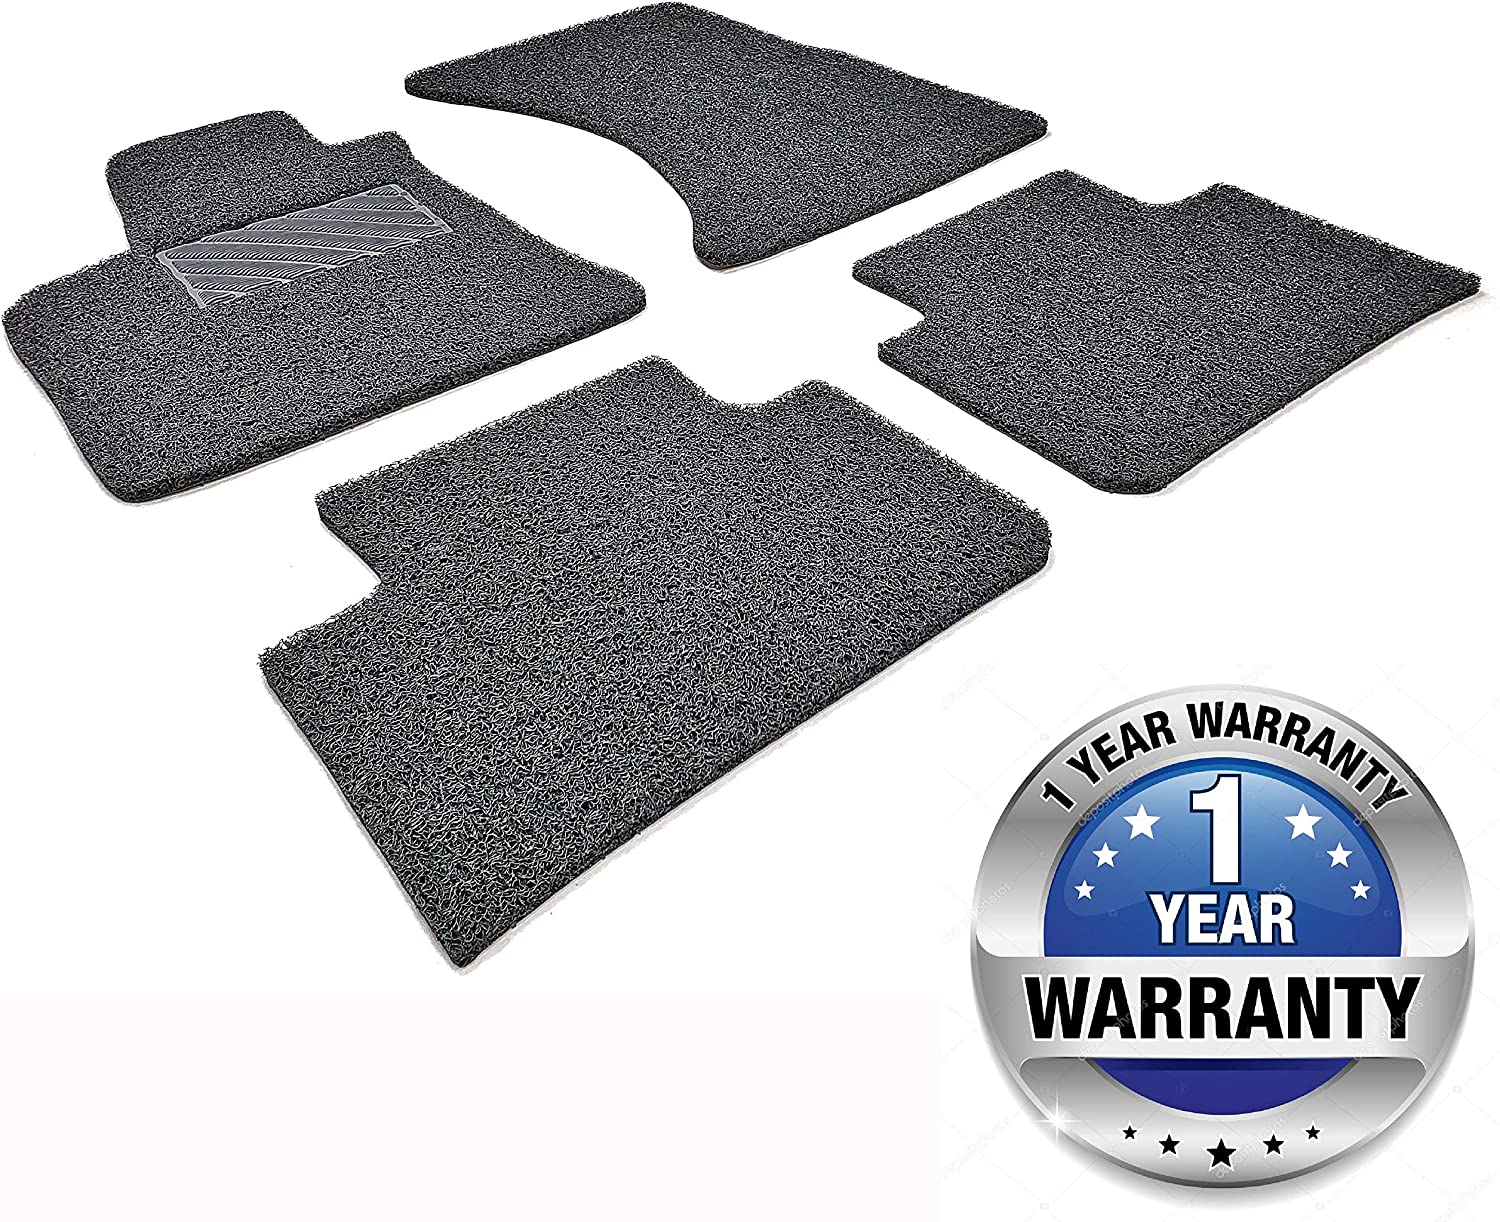 Black Autotech Zone Heavy Duty Custom Fit Car Floor Mat Compatible with 2010-2017 Chevrolet Equinox SUV All Weather Protector 4 Pieces Set